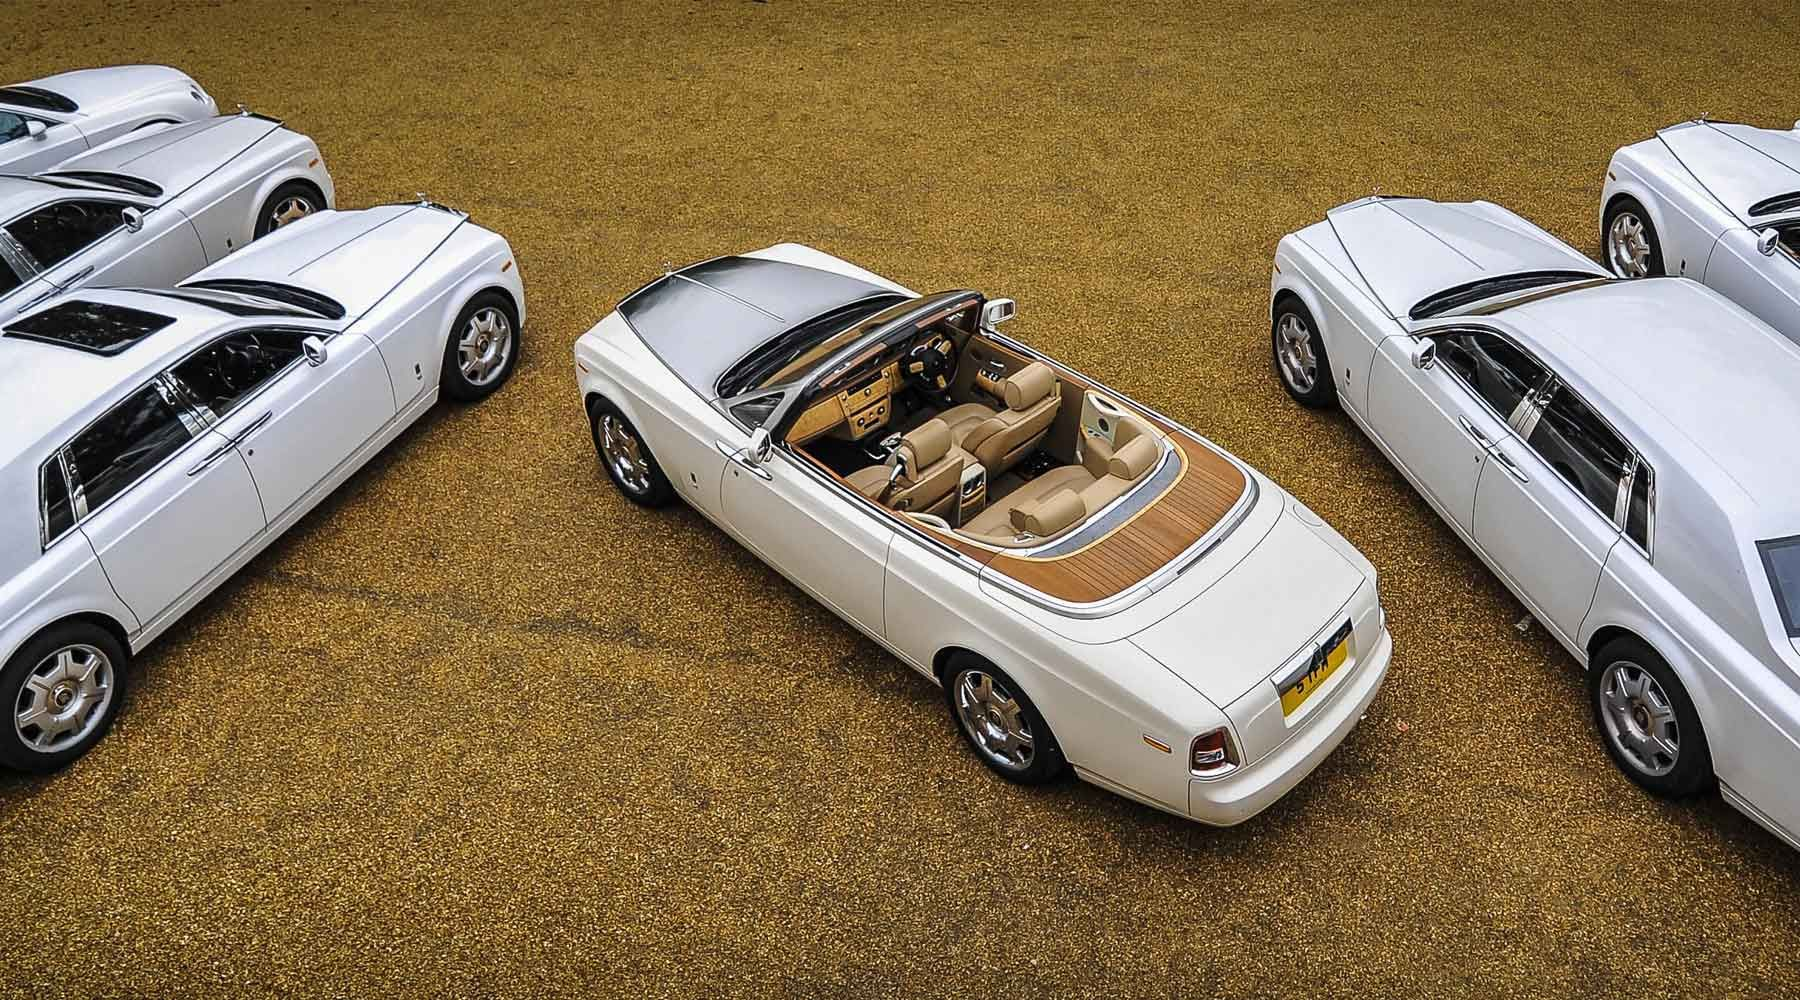 Call Us On 0800 542 1337 Or 0121 227 9984 Wedding Car Hire Limo Hire Super Car Hire Chauffeur Car Hire And Helicopter Char Super Cars Car Hire Rolls Royce